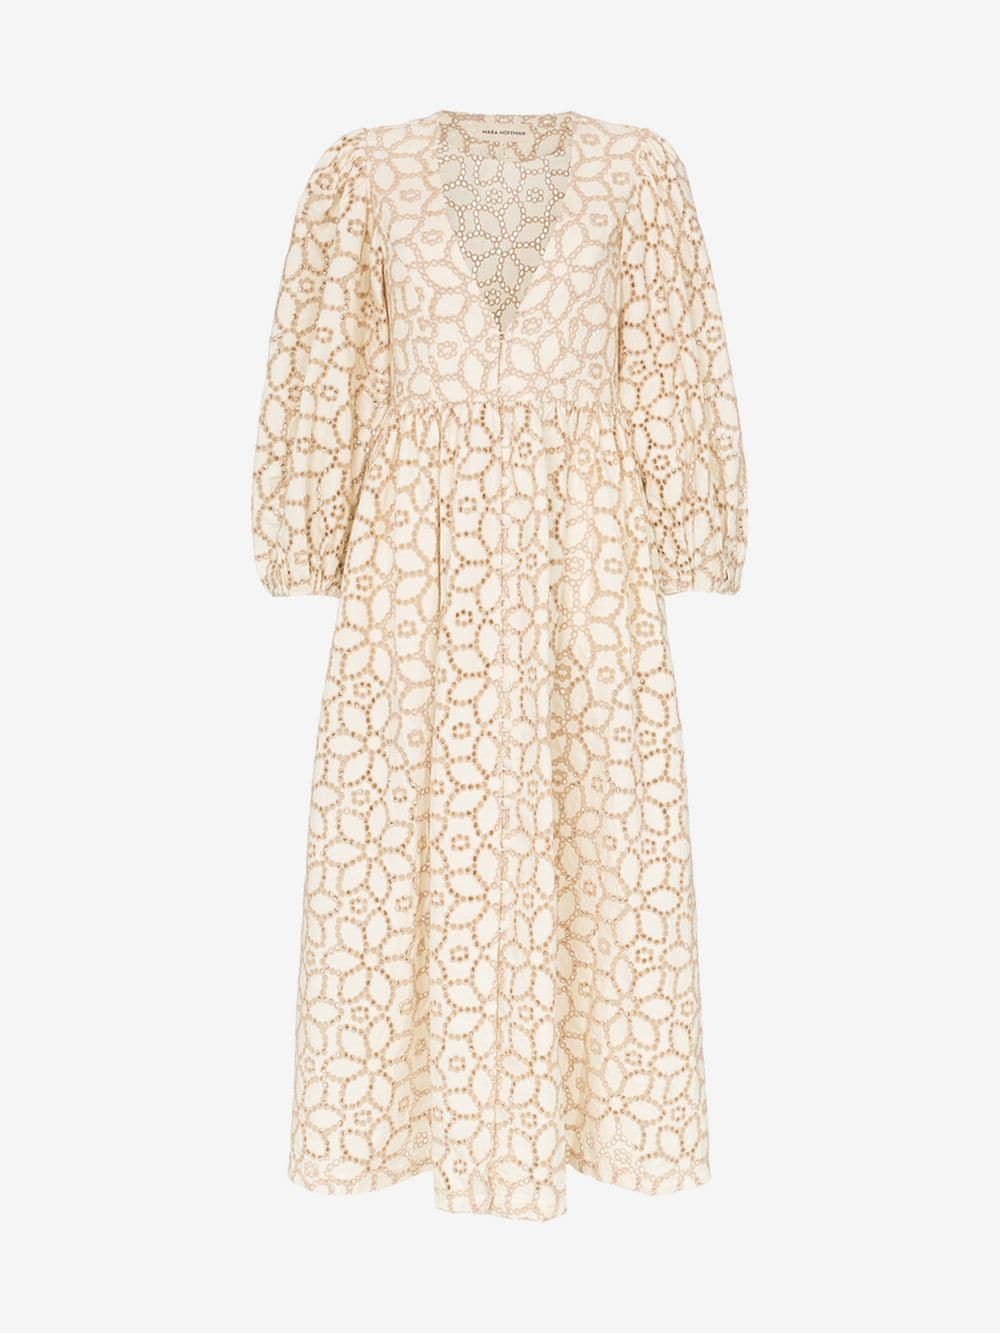 Mara Hoffman Bette floral-embroidered cotton-blend dress in natural / sand